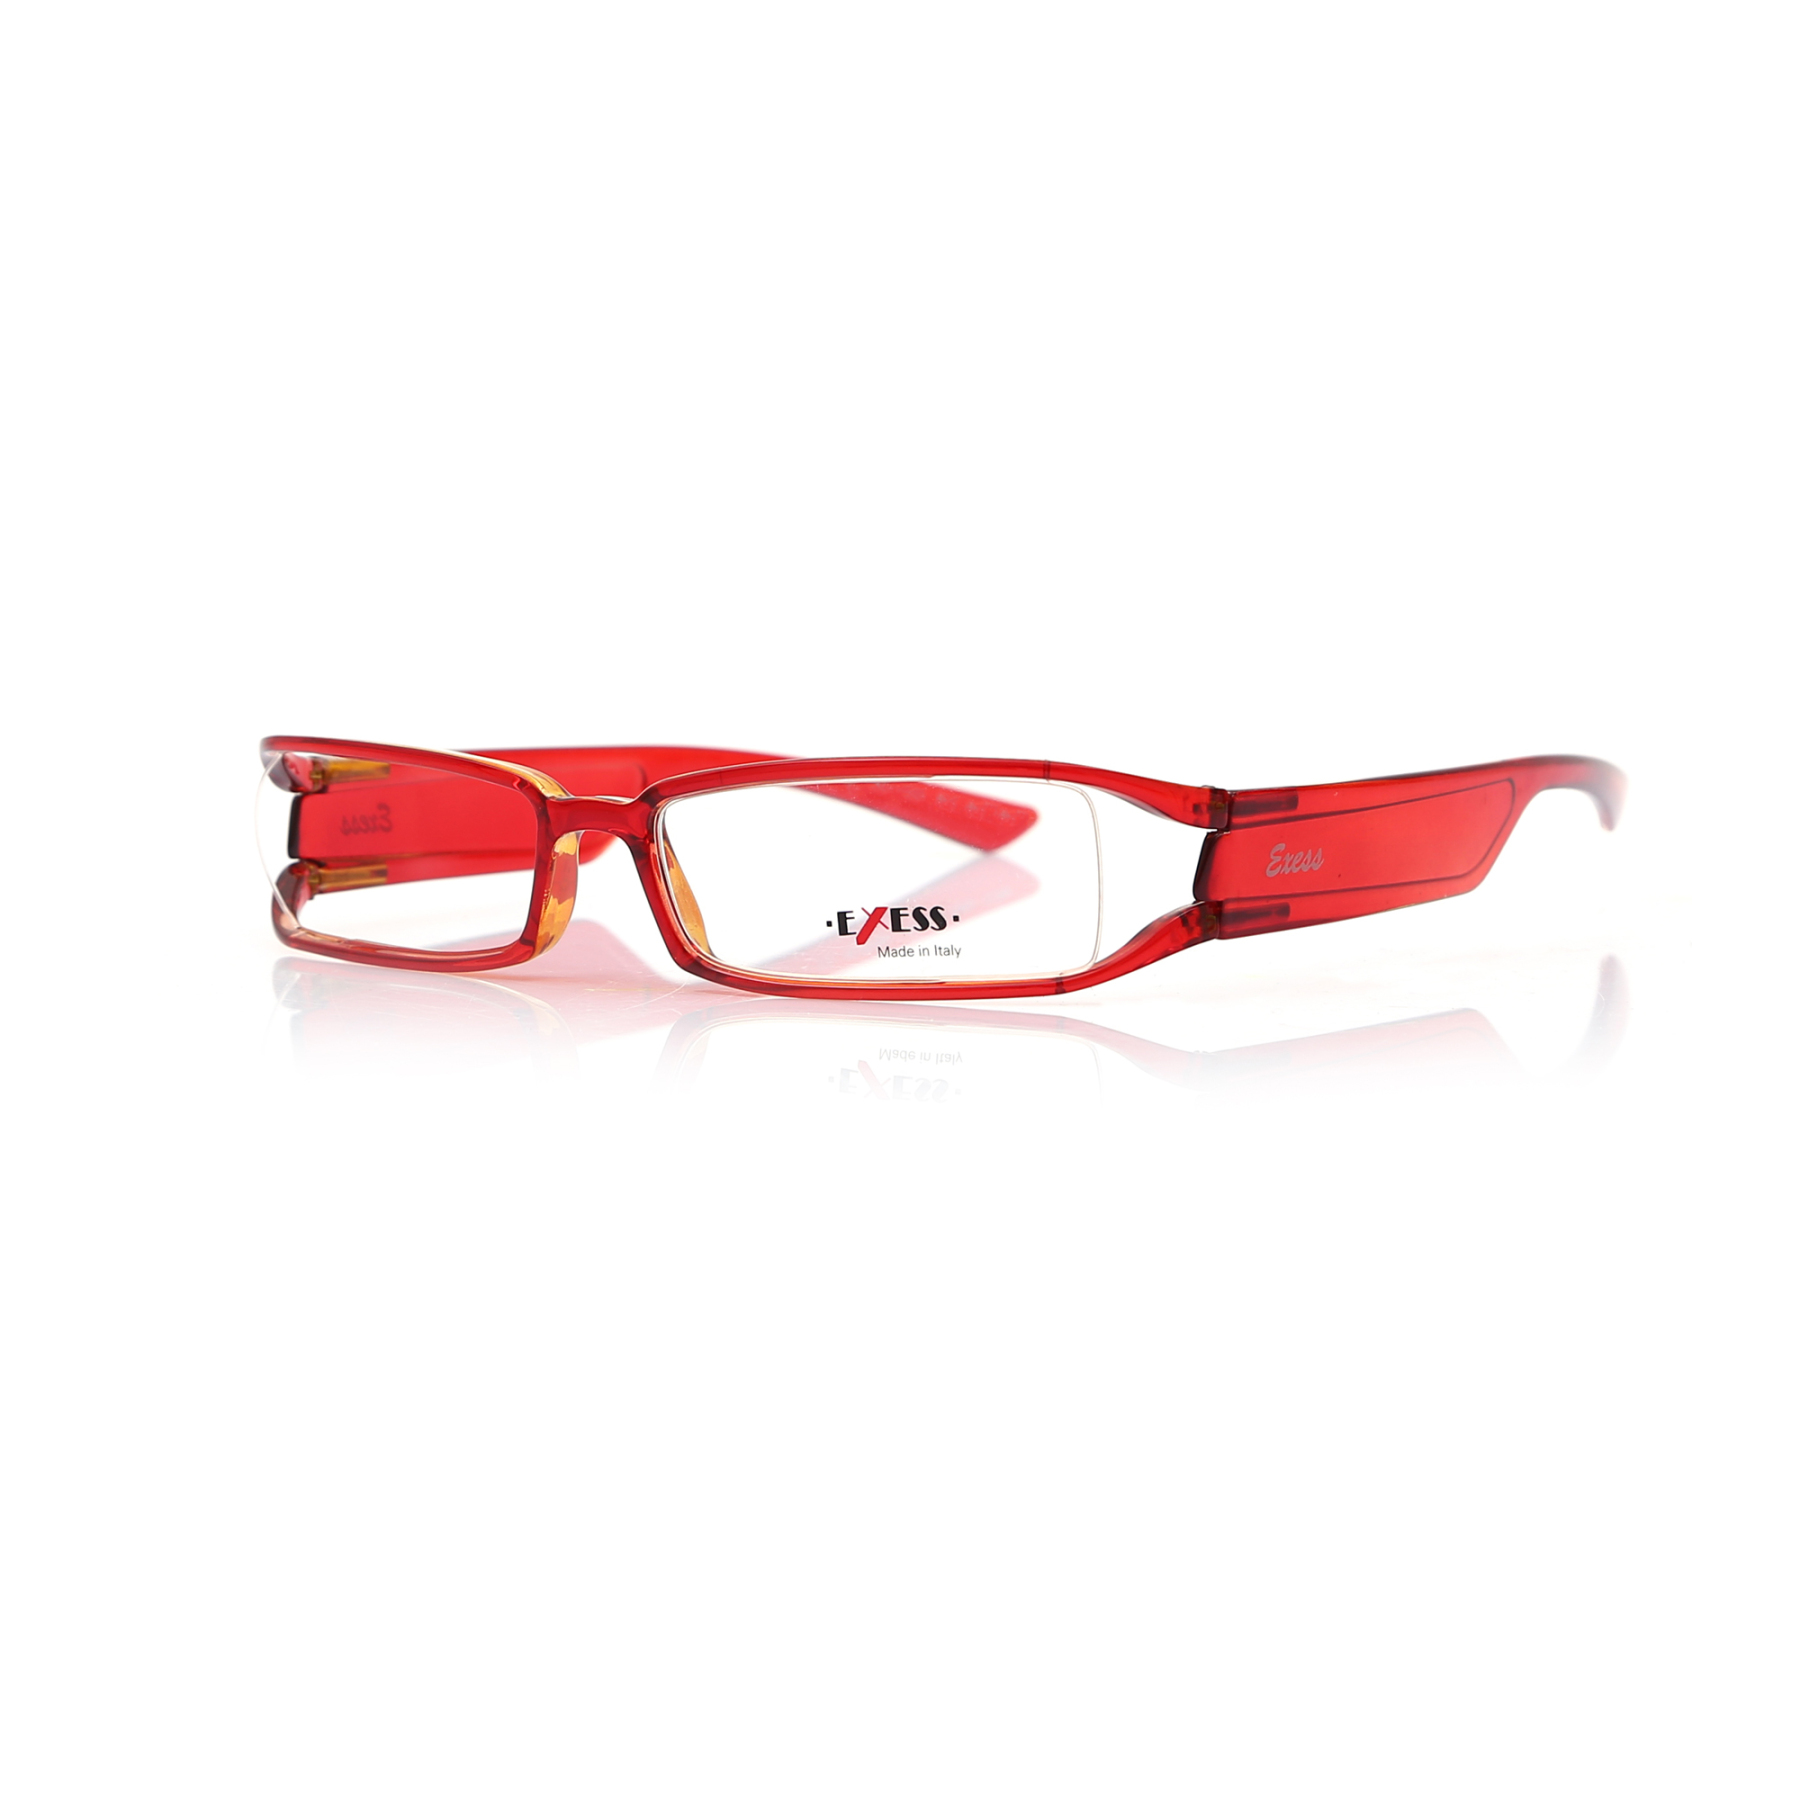 Markamilla Women Reading Glasses RedRectangle Frame Demo Glasses Eyewear Transparent High Quality WomenExess E 497 1633 55-15